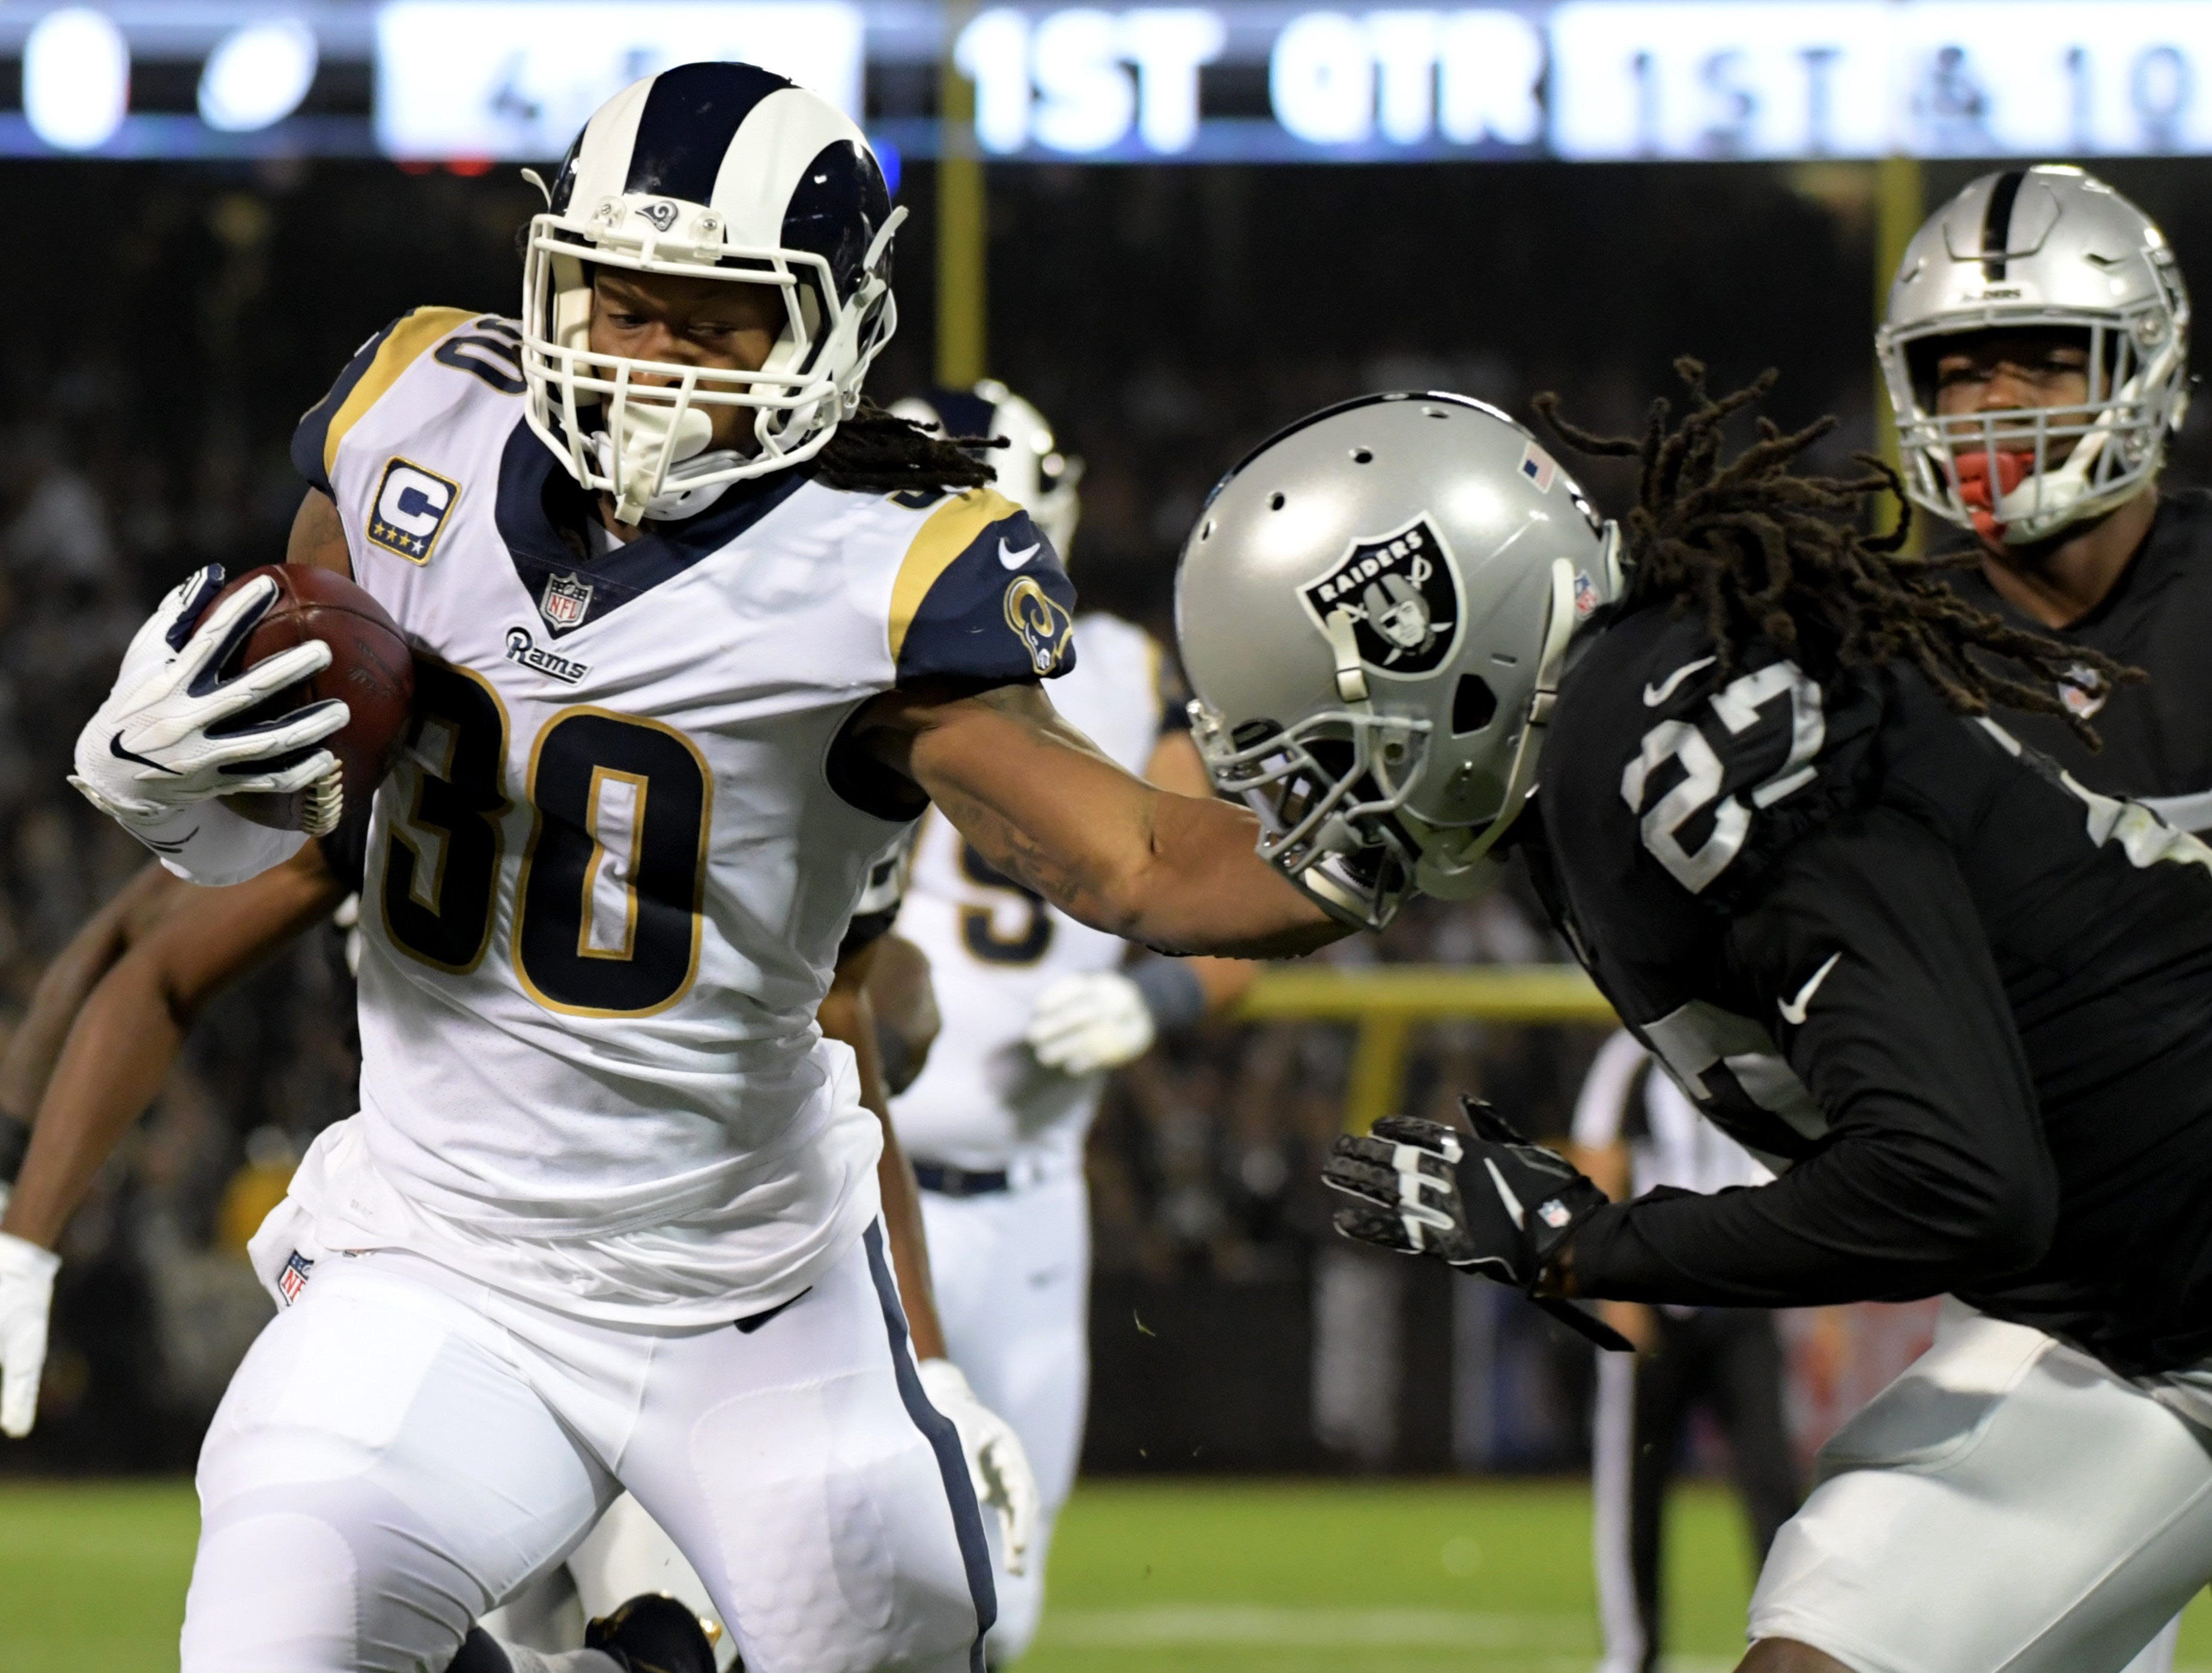 Los Angeles Rams running back Todd Gurley stiff arms Oakland Raiders defensive back Reggie Nelson during the first half at the Oakland-Alameda County Coliseum.